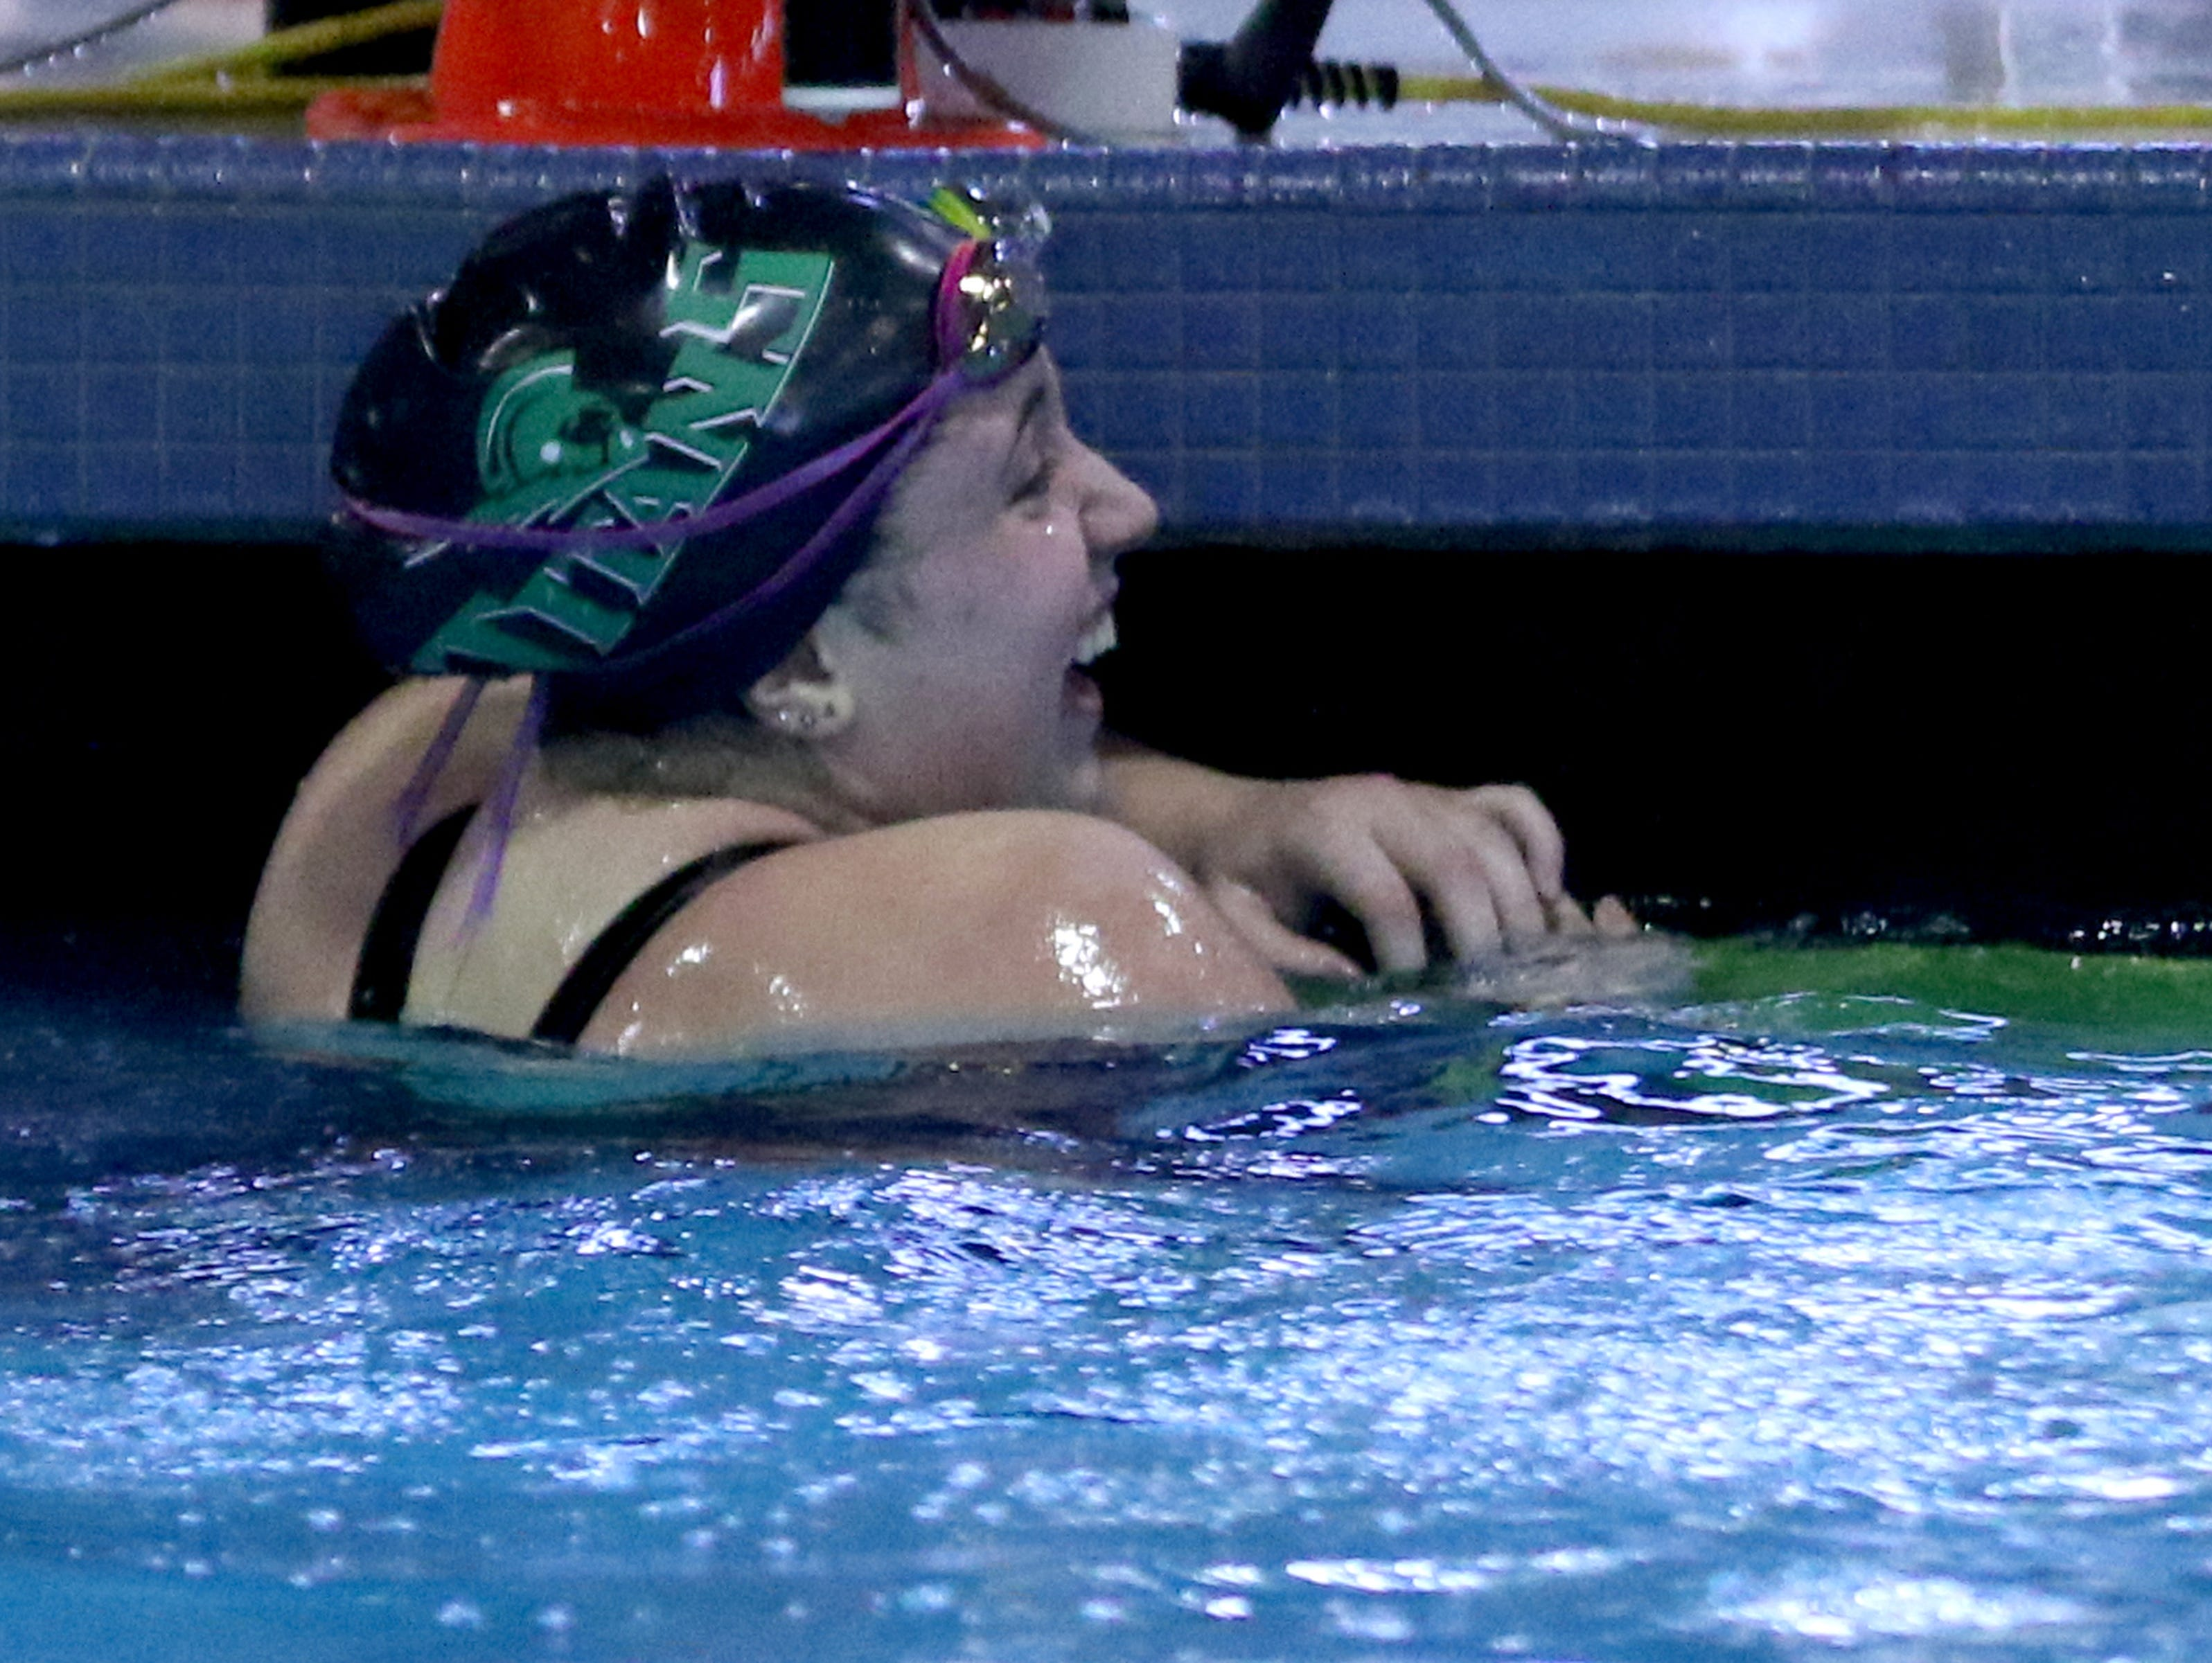 West Salem's Alaina Otterstrom smiles after winning the 100 yard butterfly during the Greater Valley Conference swimming championships at the McMinnville Aquatic Center on Saturday, Feb. 11, 2017.